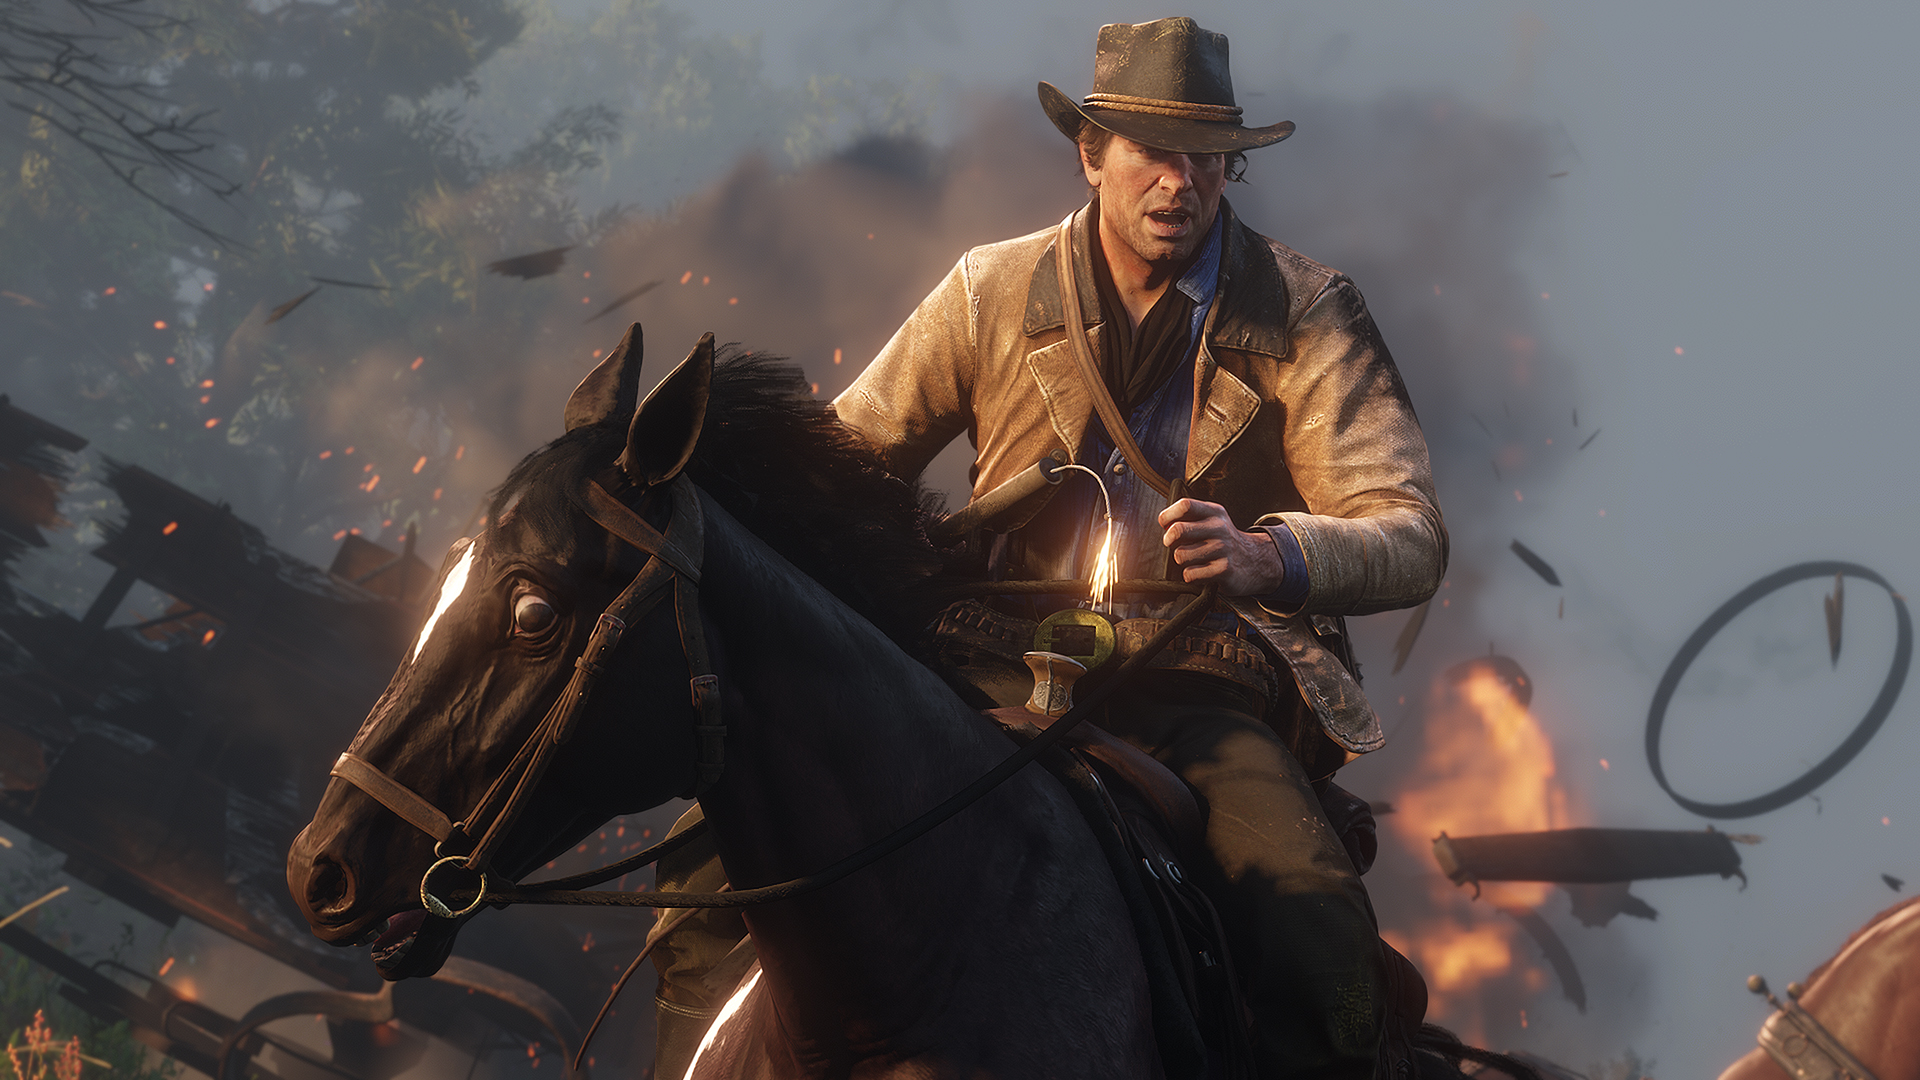 Red Dead Redemption 2 - Arthur rides on horseback in front of an explosion